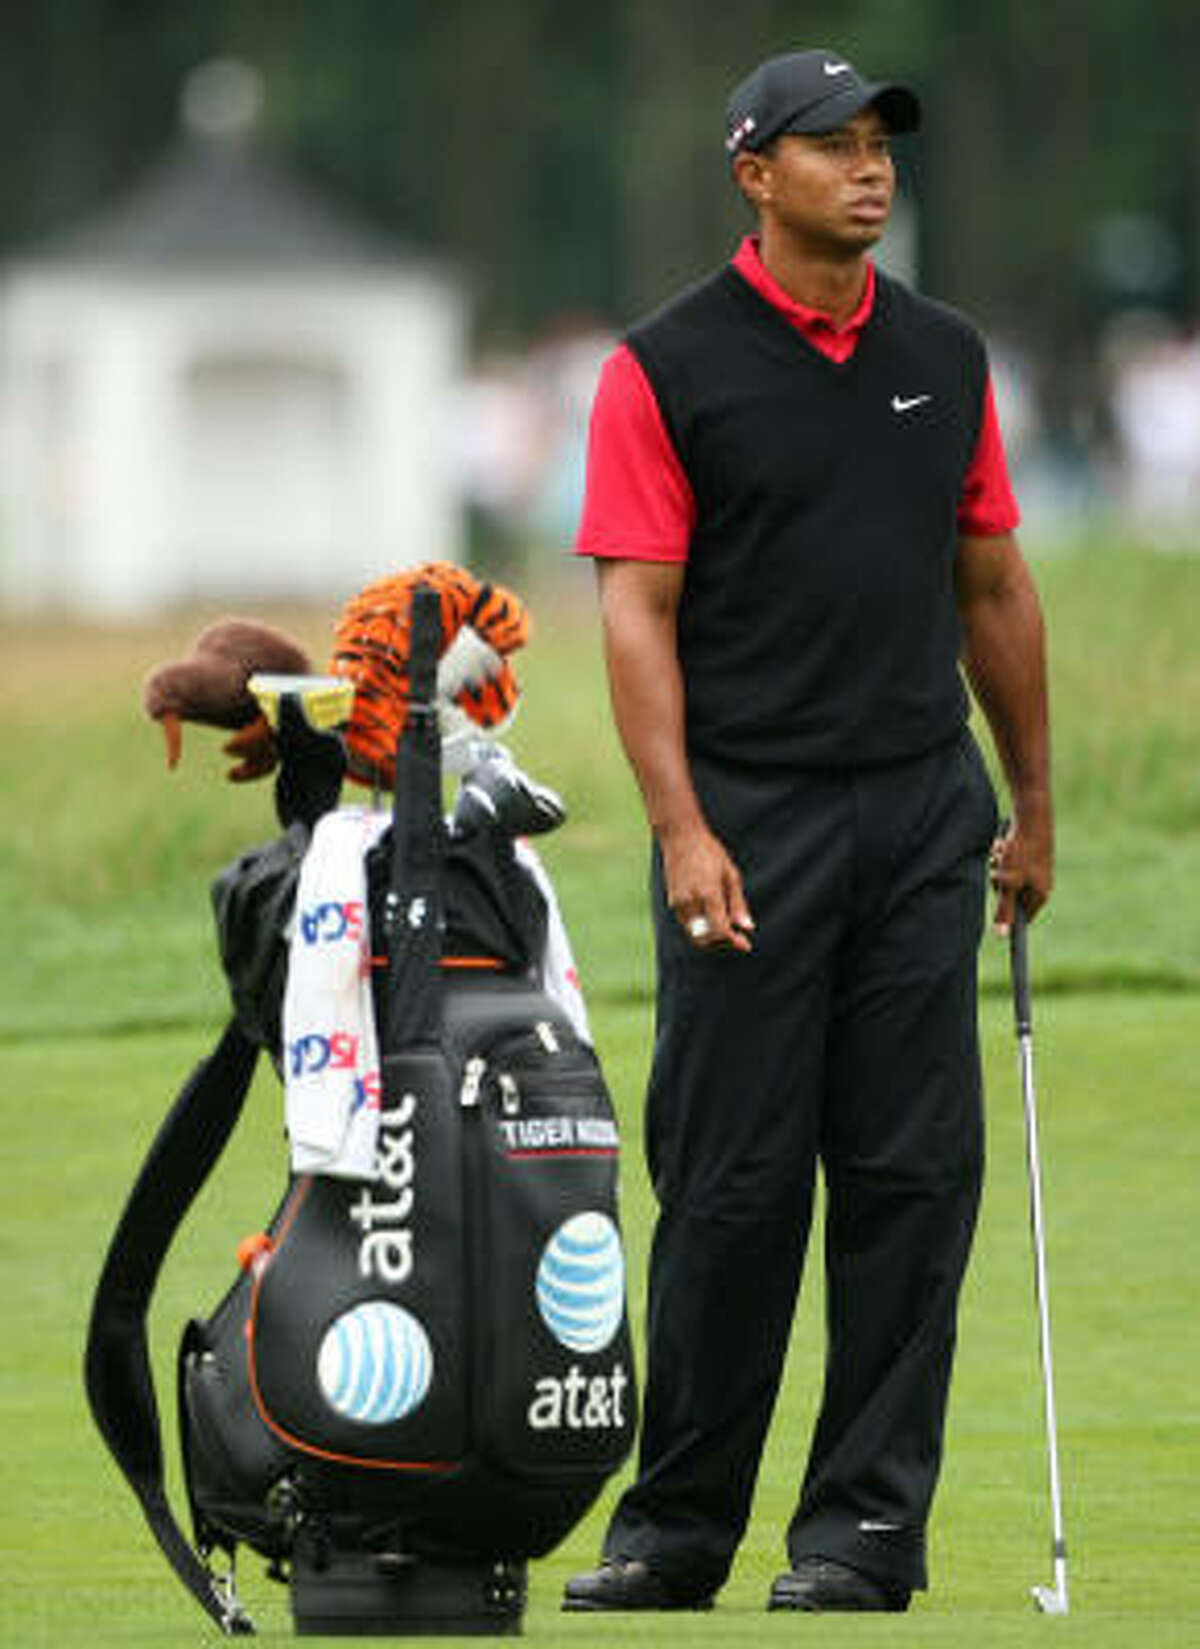 Tiger Woods waits in the 12th fairway during the continuation of the third round of the 109th U.S. Open.